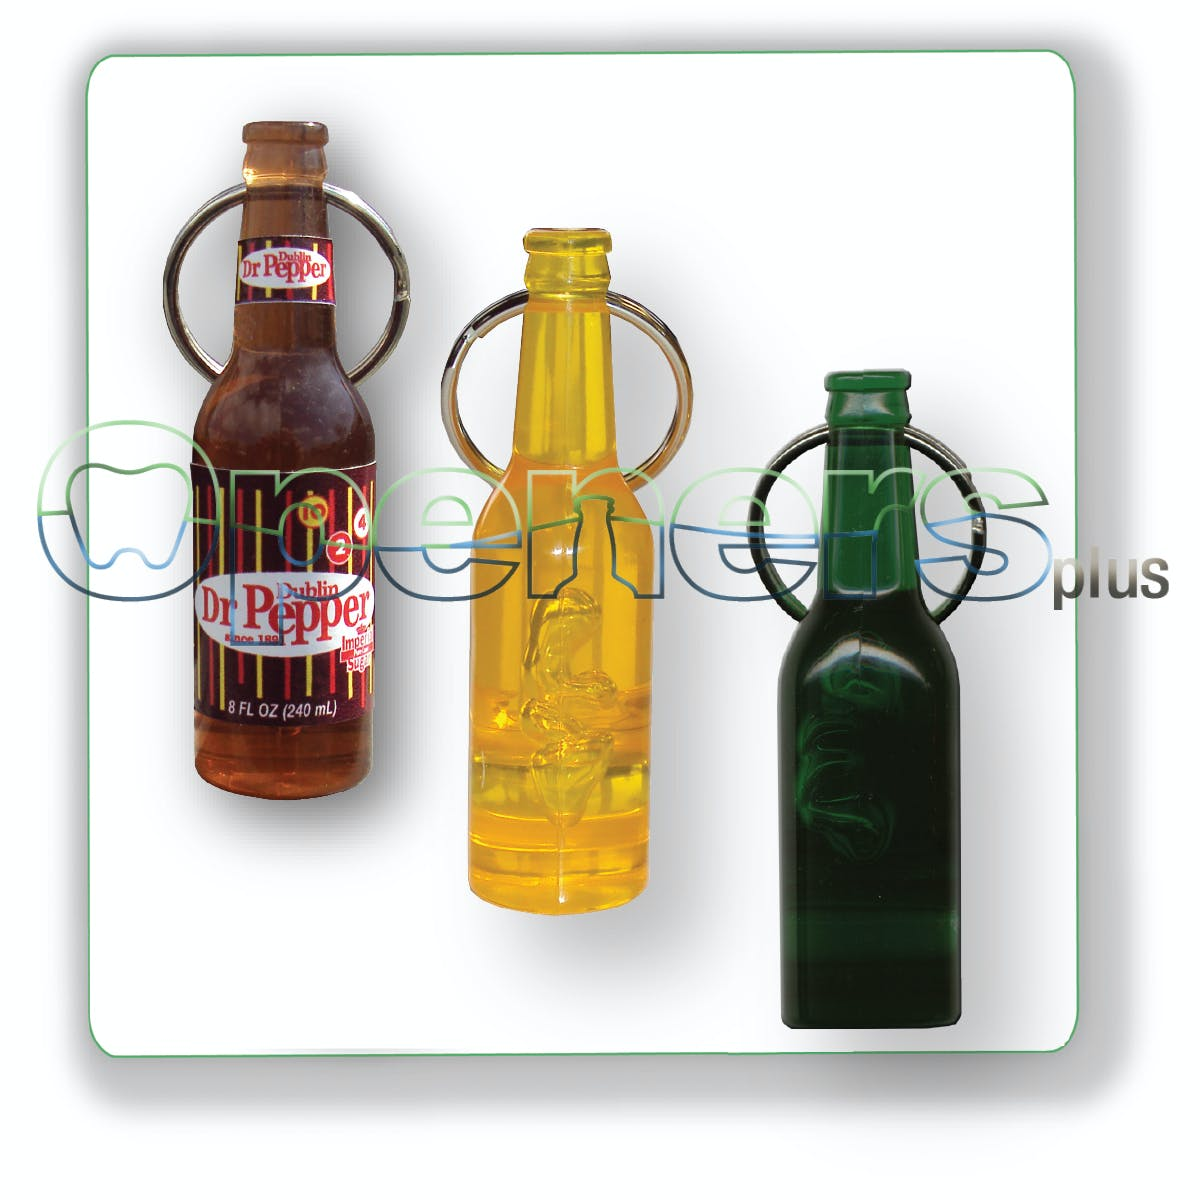 Mini Bottle opener with key ring - sold by Openers Plus